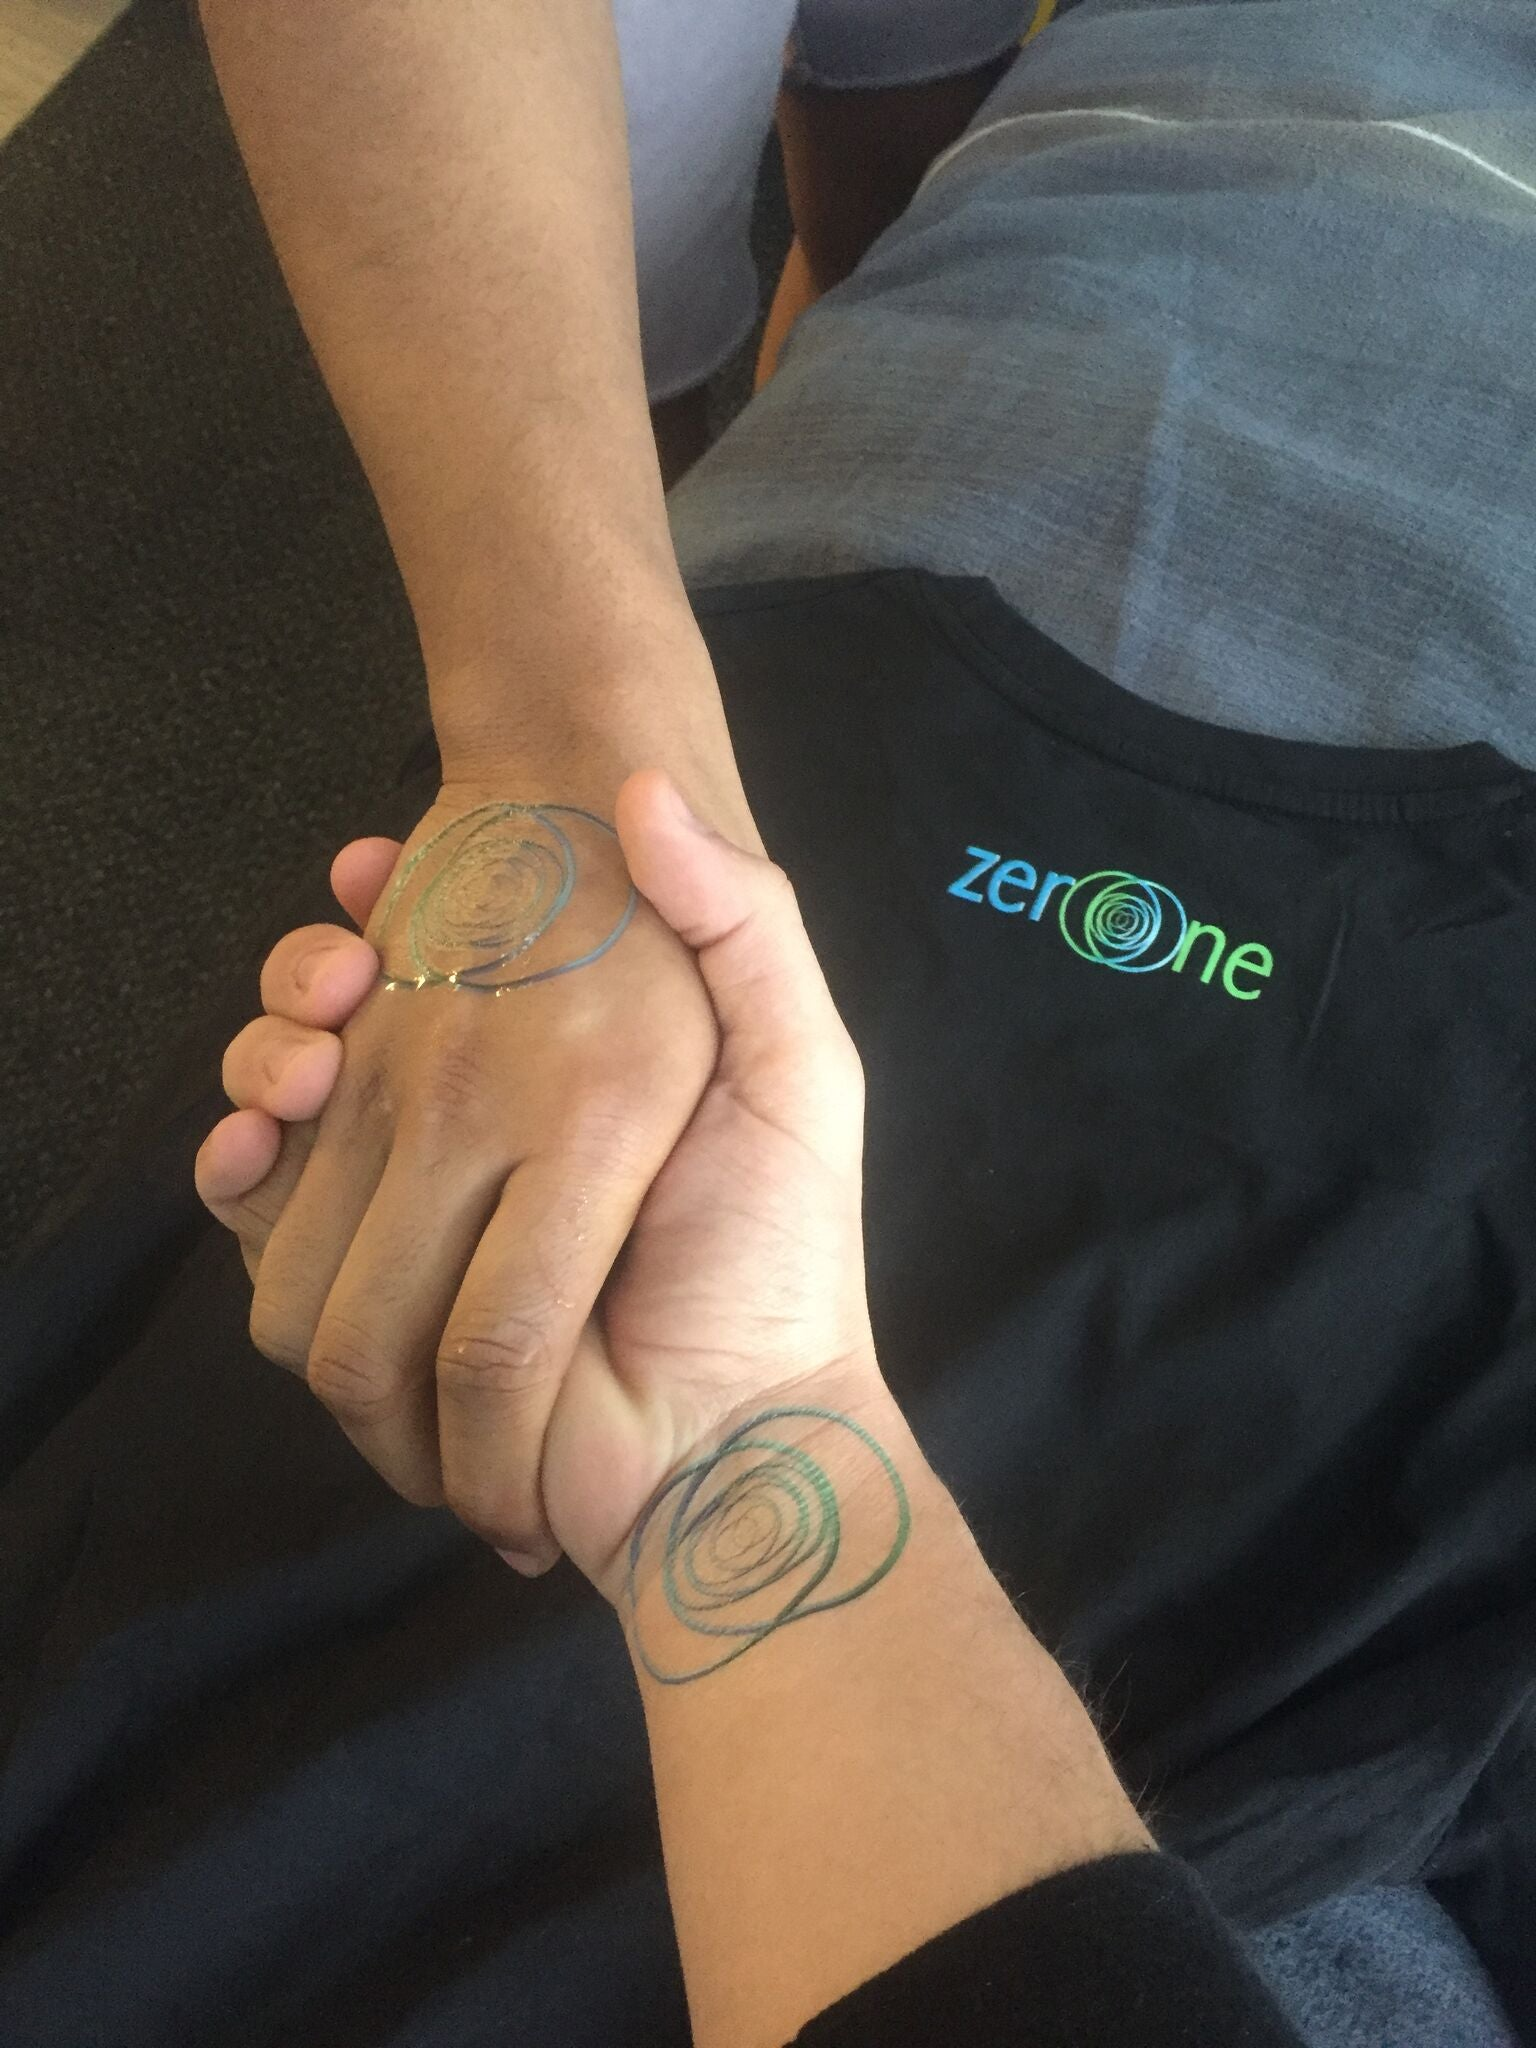 zeroone™ QRas® Tattoo (Gifted at no charge - you only pay for shipping)